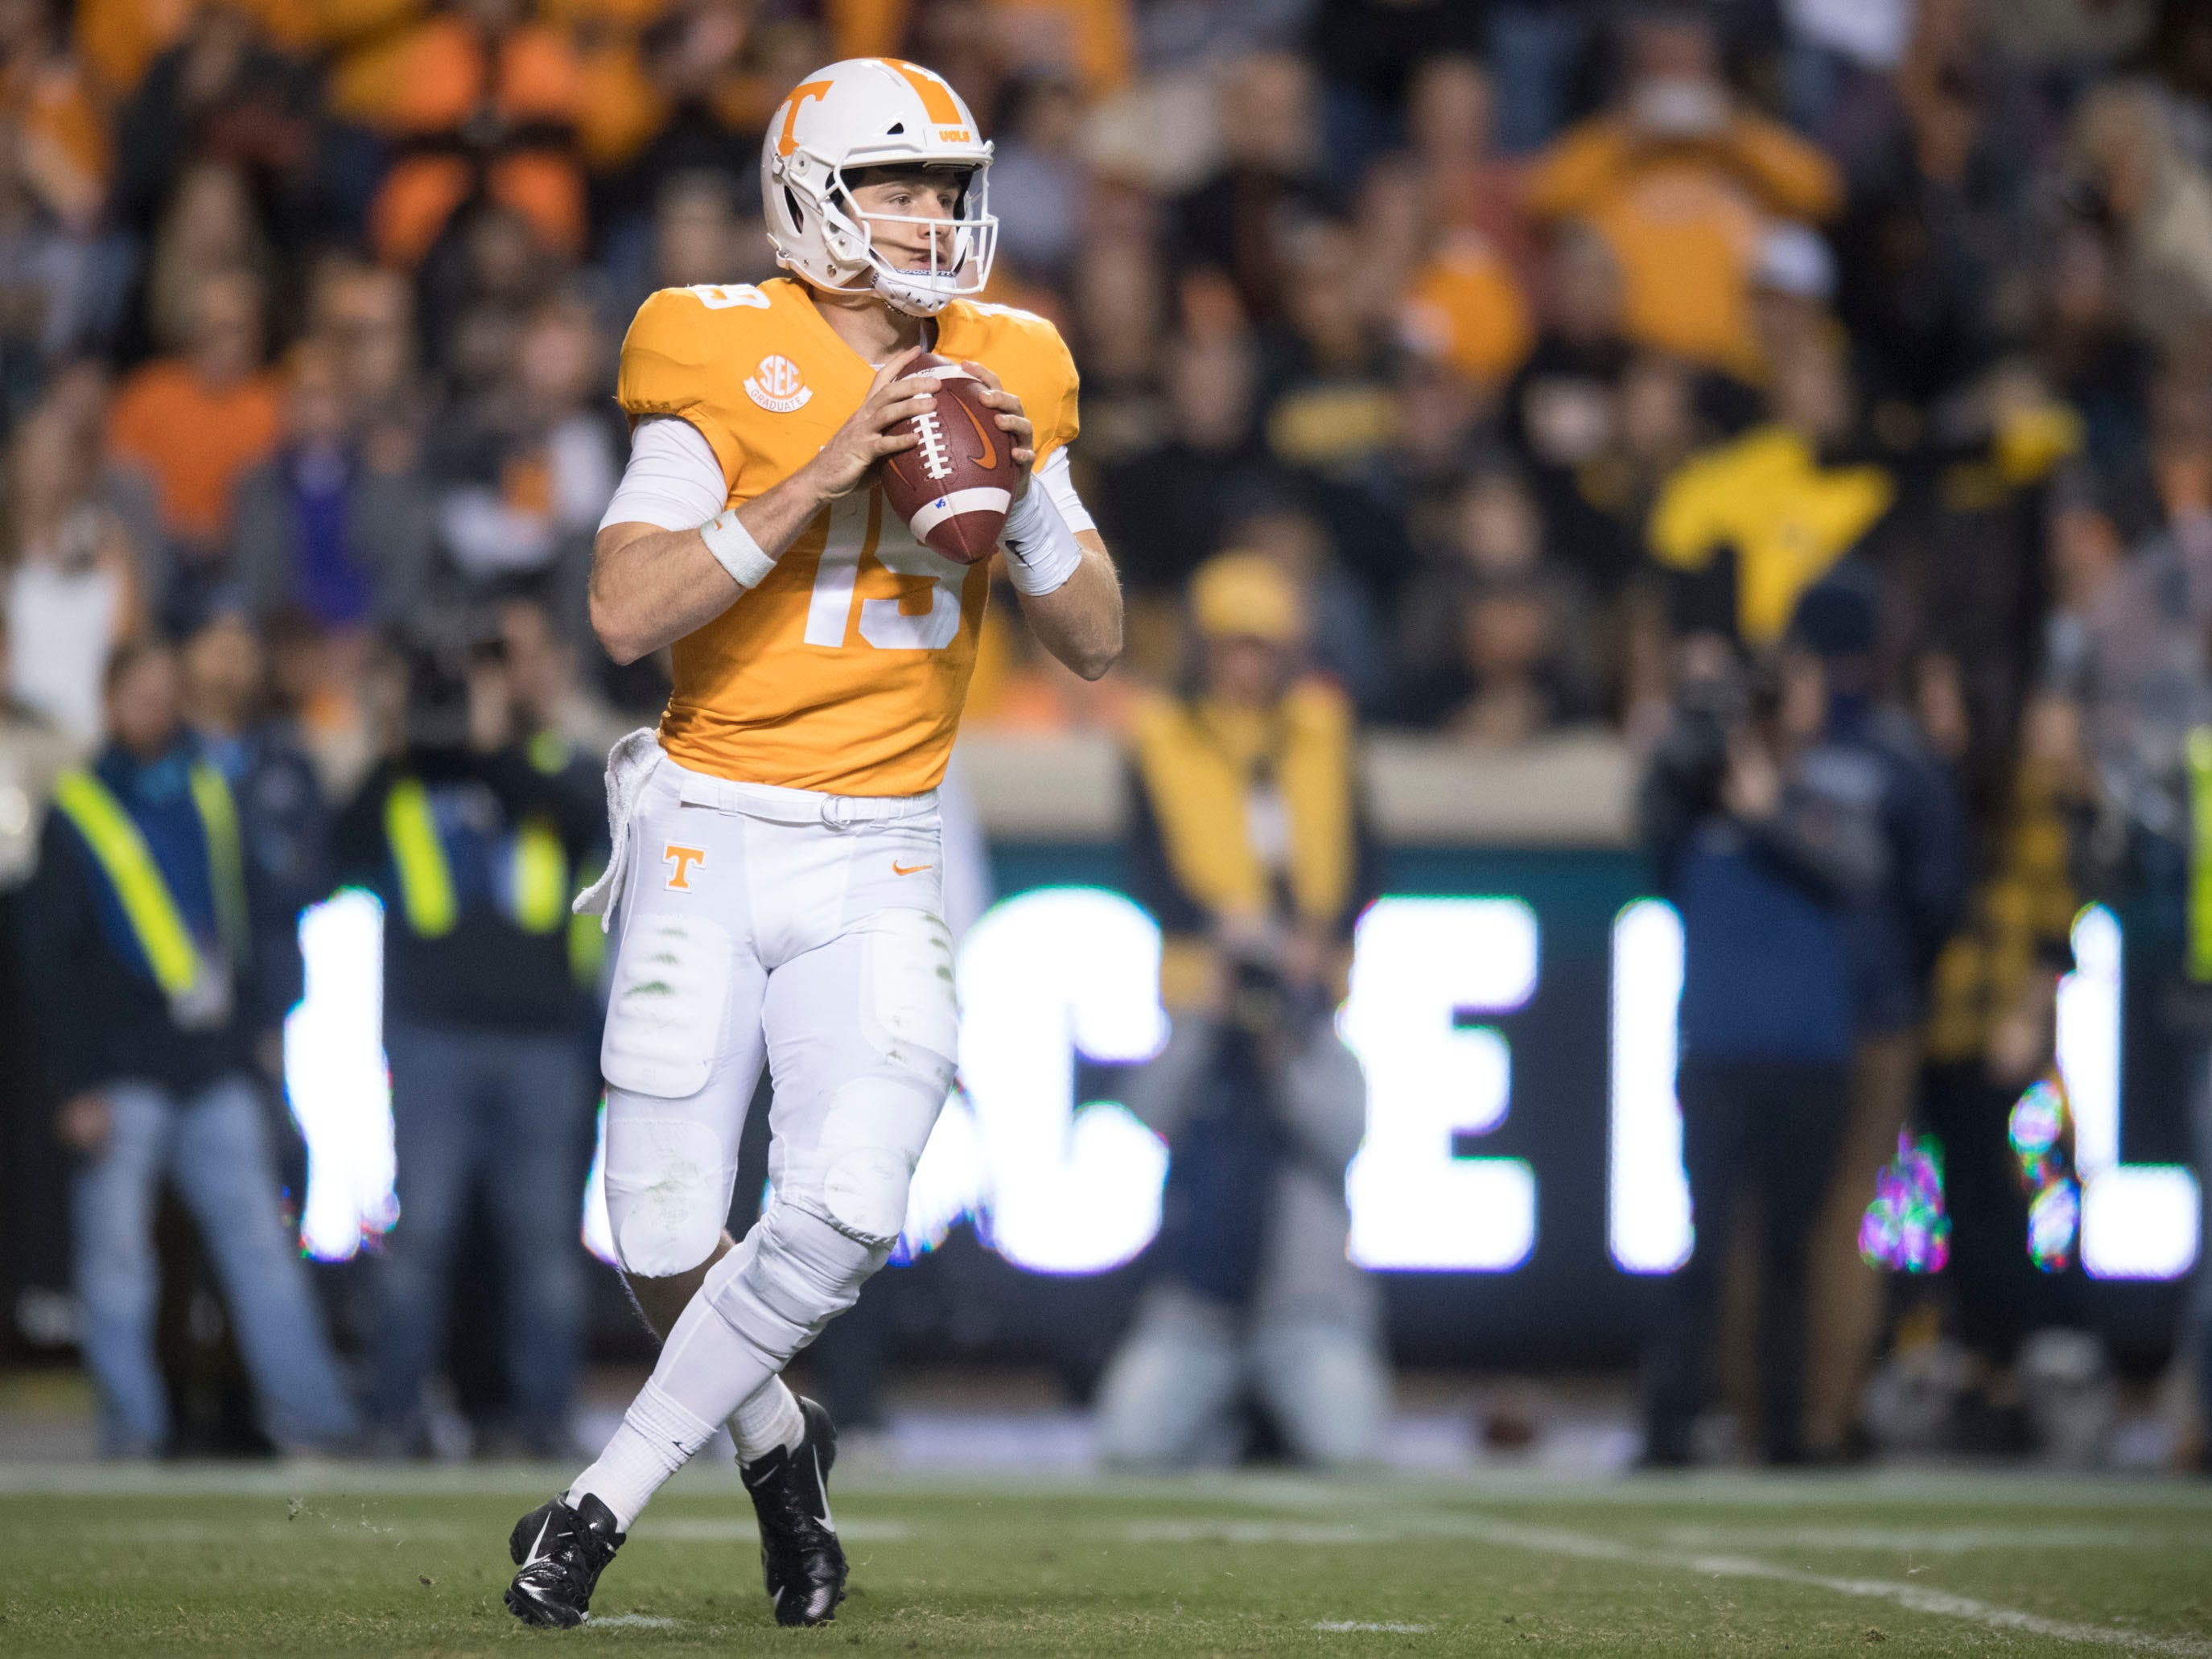 Tennessee quarterback Keller Chryst (19) looks for an open receiver during the game against Missouri on Saturday, November 17, 2018.